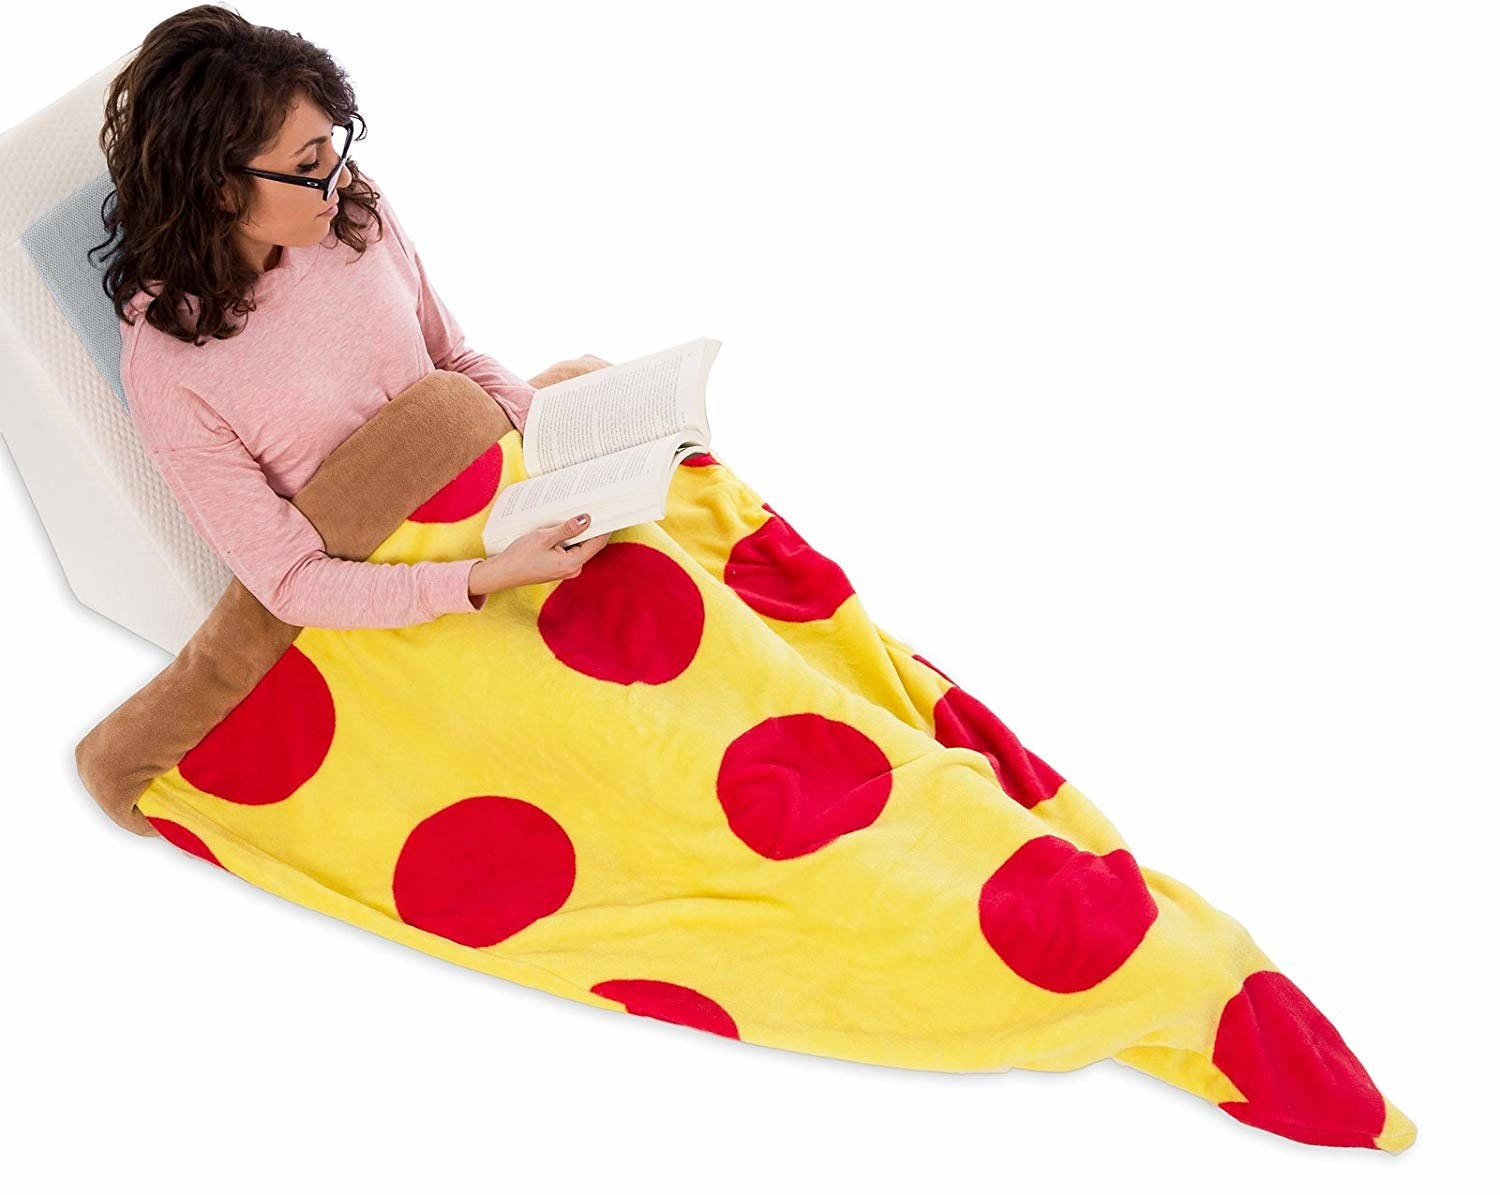 The blanket that looks like a slice of pepperoni pizza